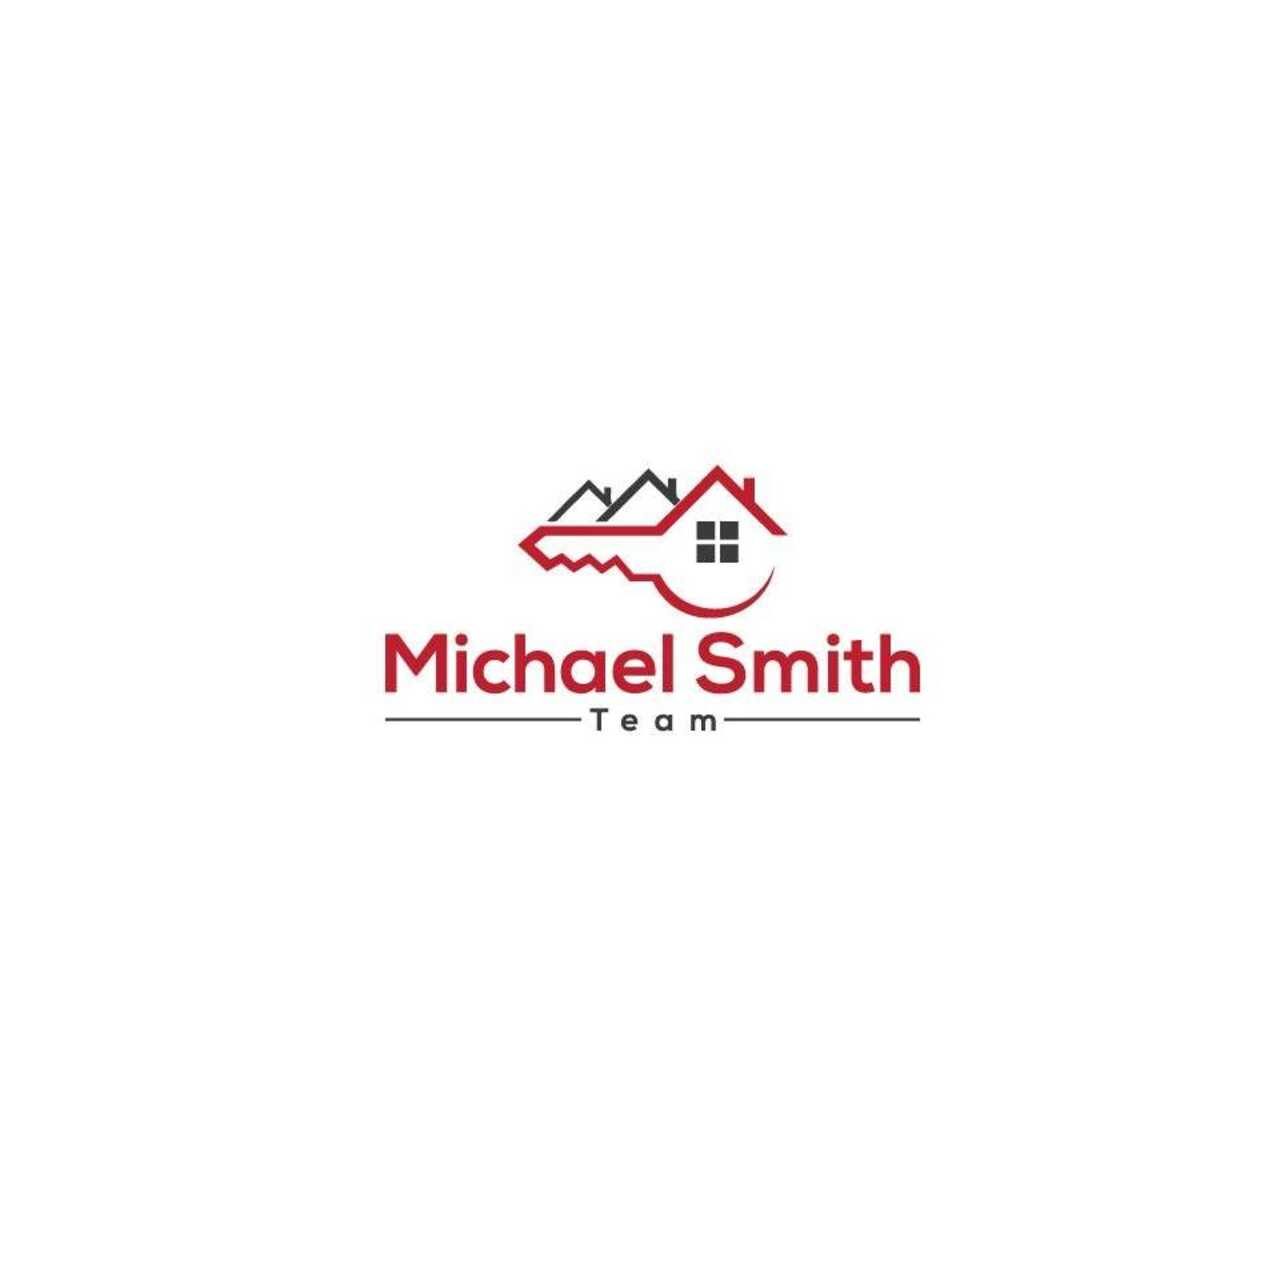 Michael Smith Team - Real Estate - Commercial Real Estate in Calgary AB